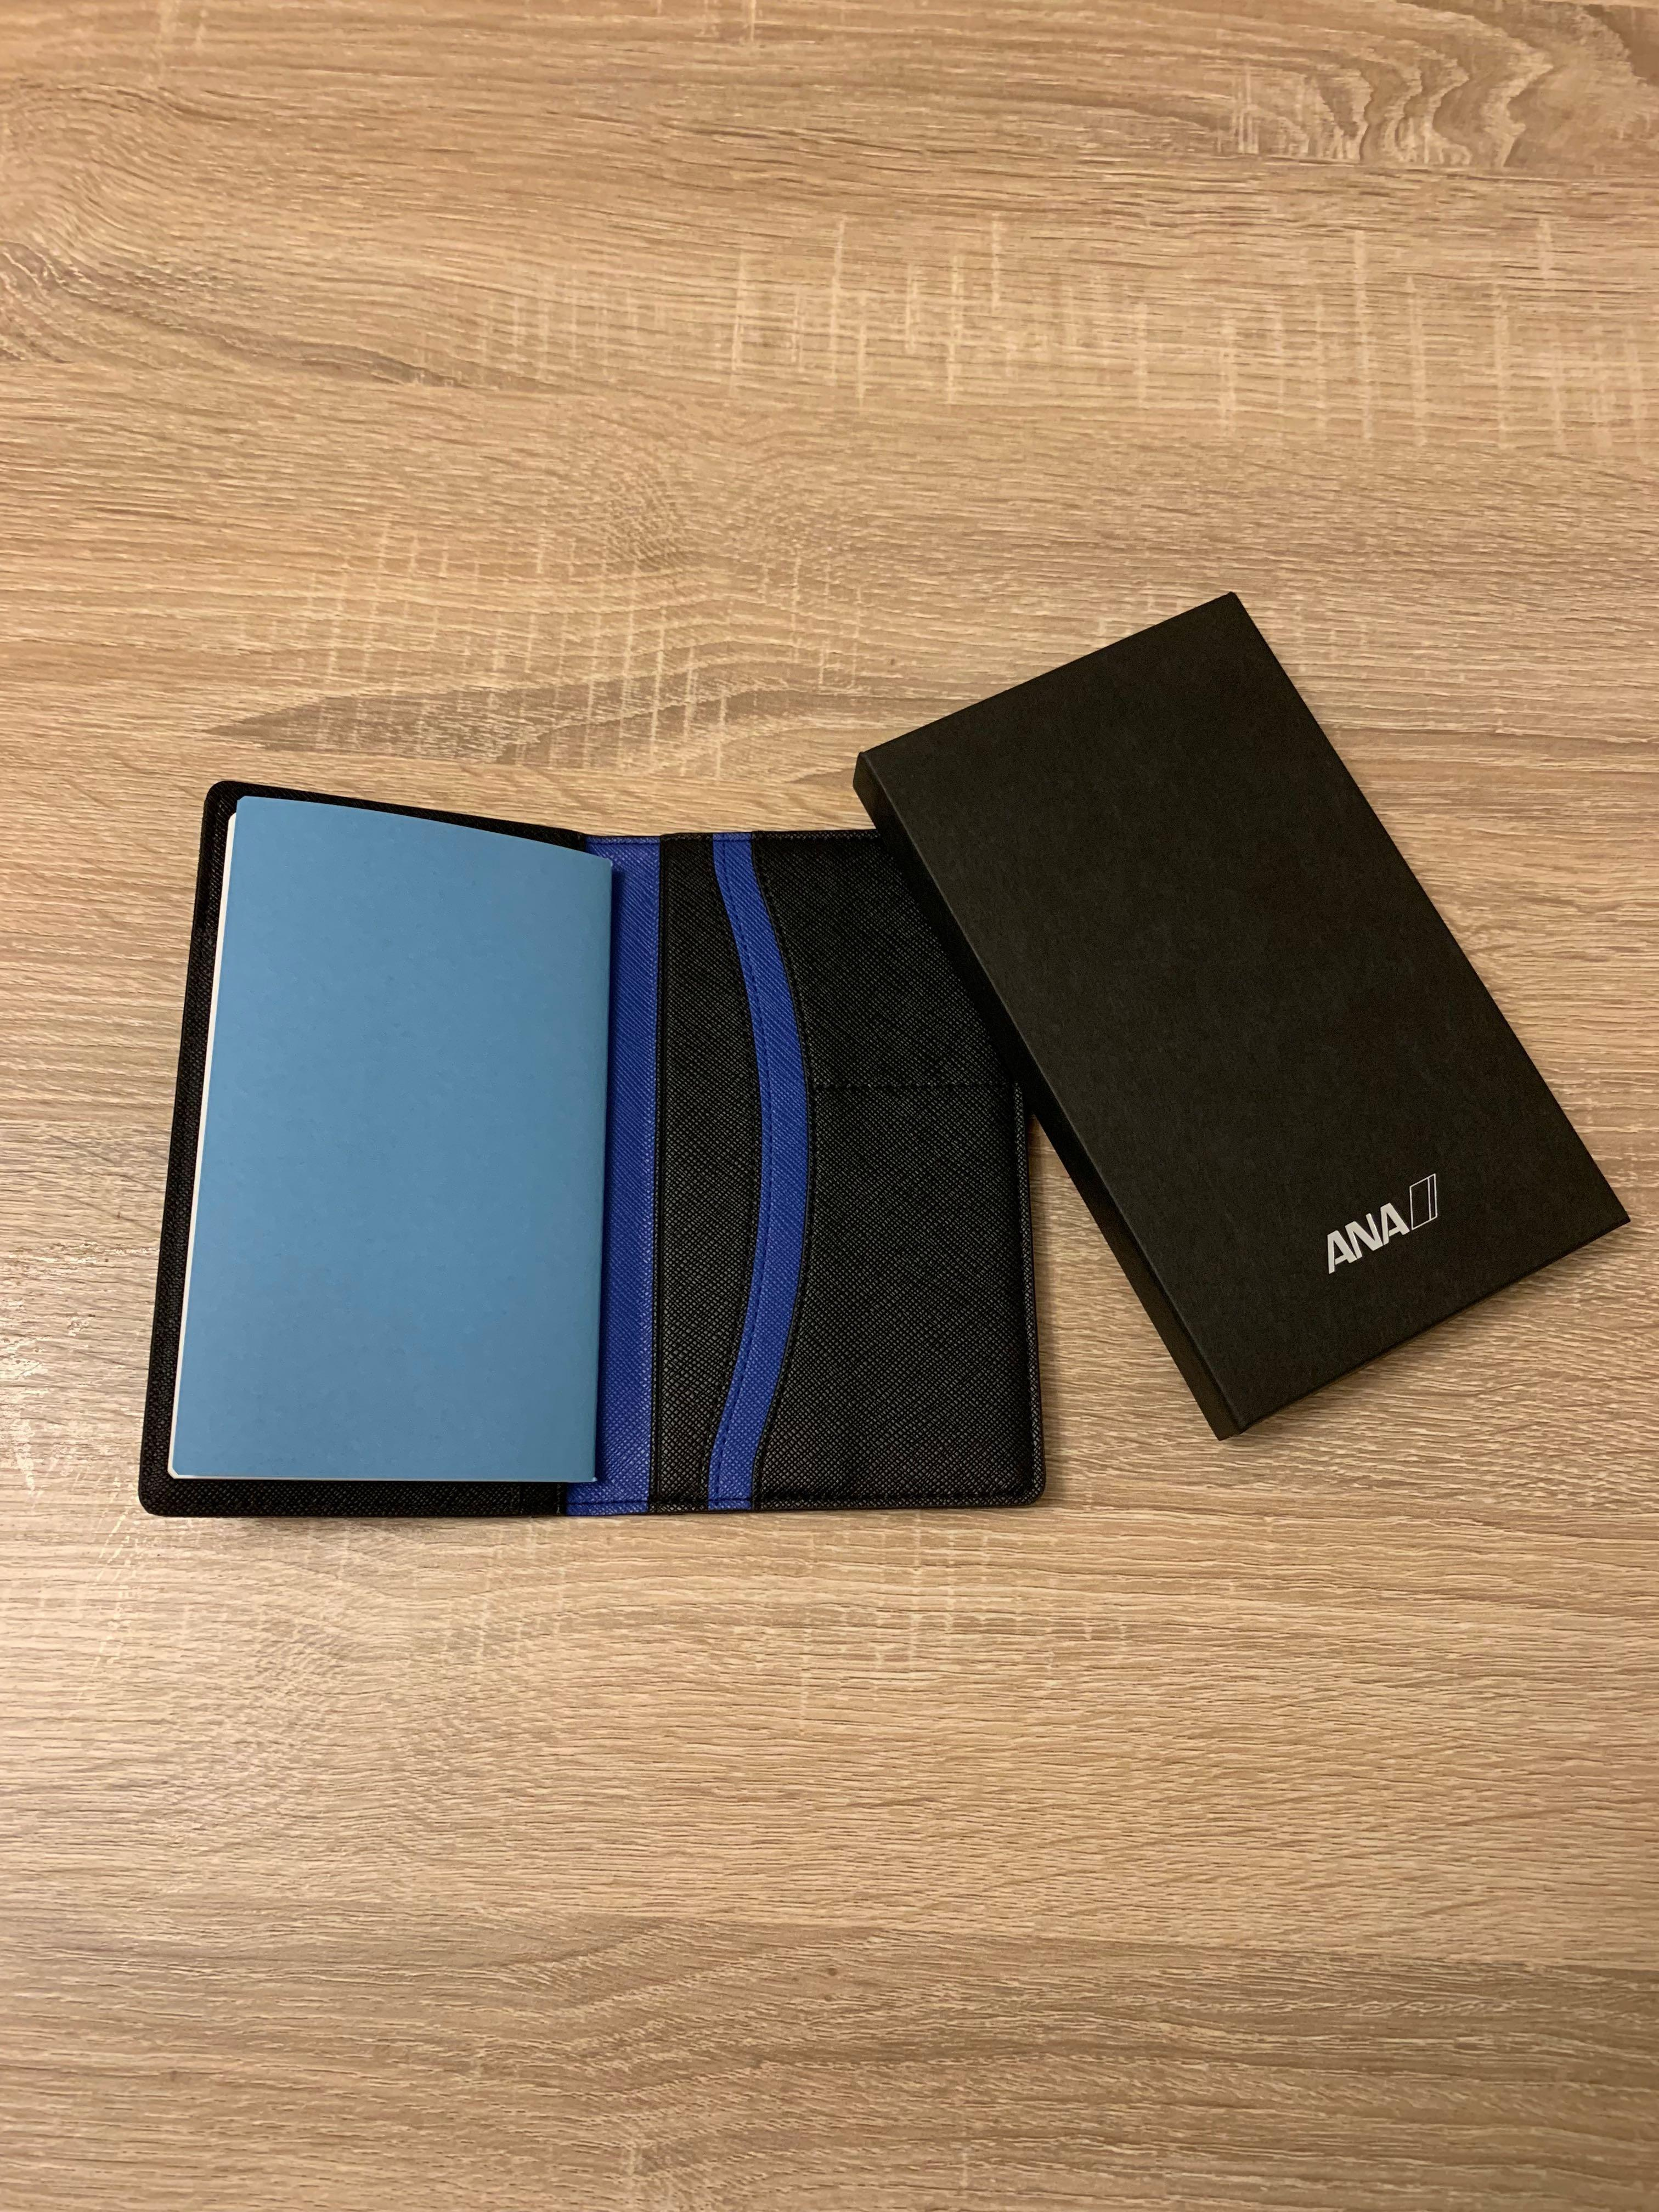 ANA 2019 diary  super flyers only limited item